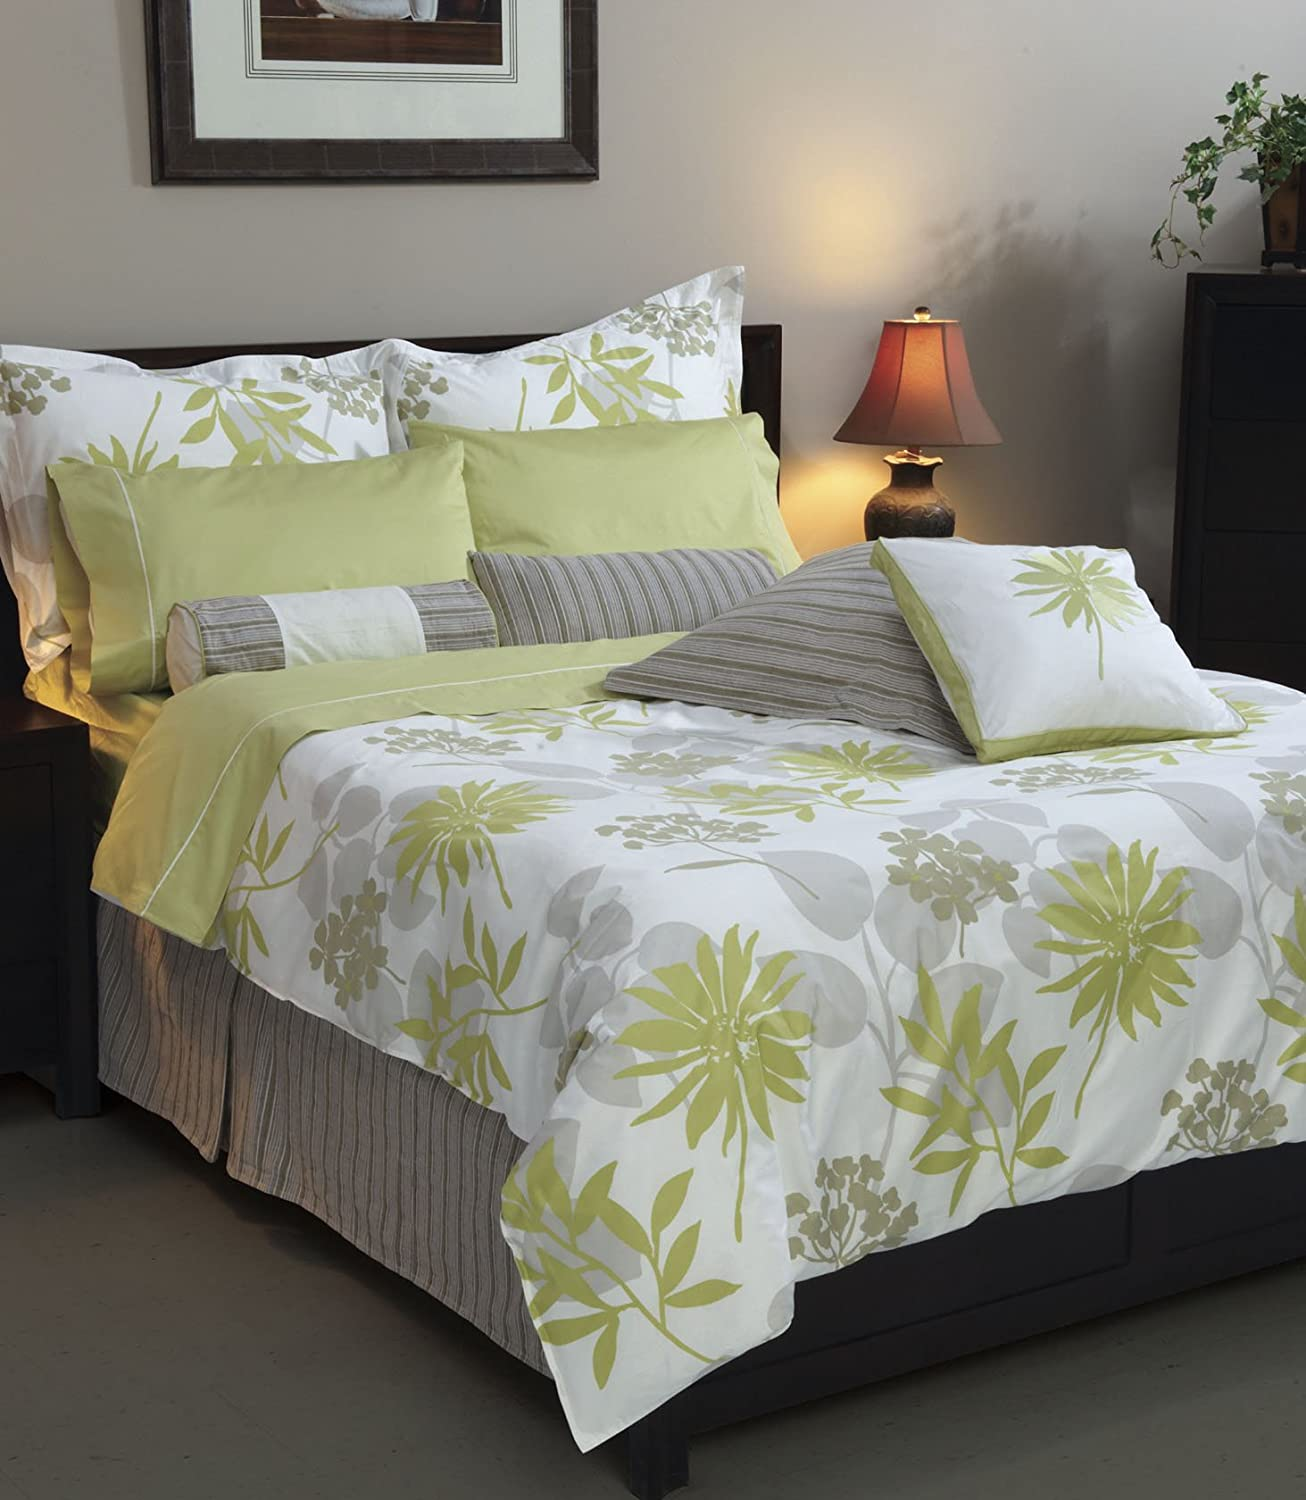 blue duvet amindi me cover king green